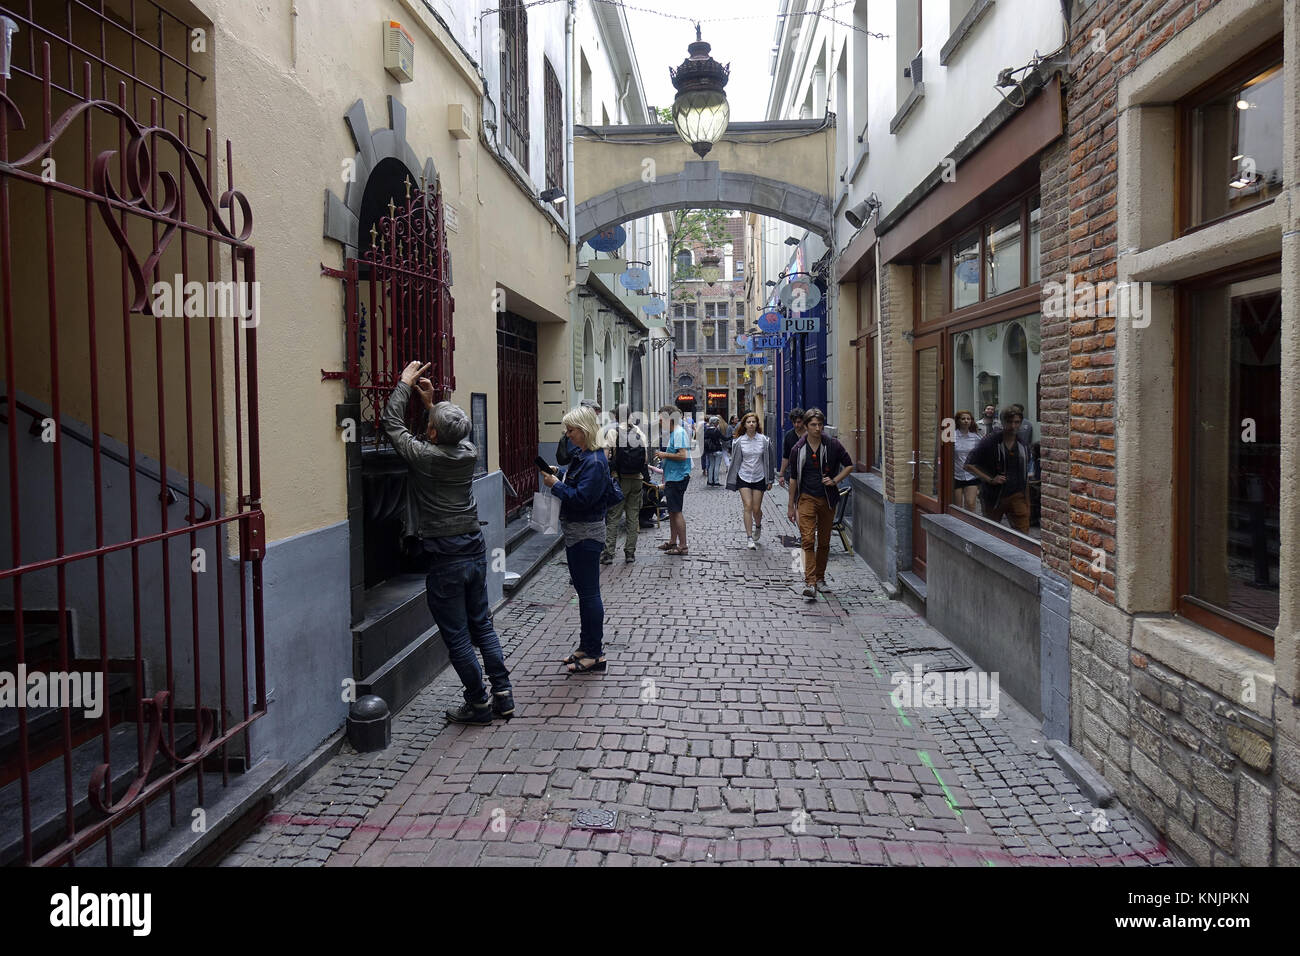 Pedestrians in the Impasse de la Fidélité in the old town of the Belgian capital Brussels, pictured on 25.06.2017. Stock Photo